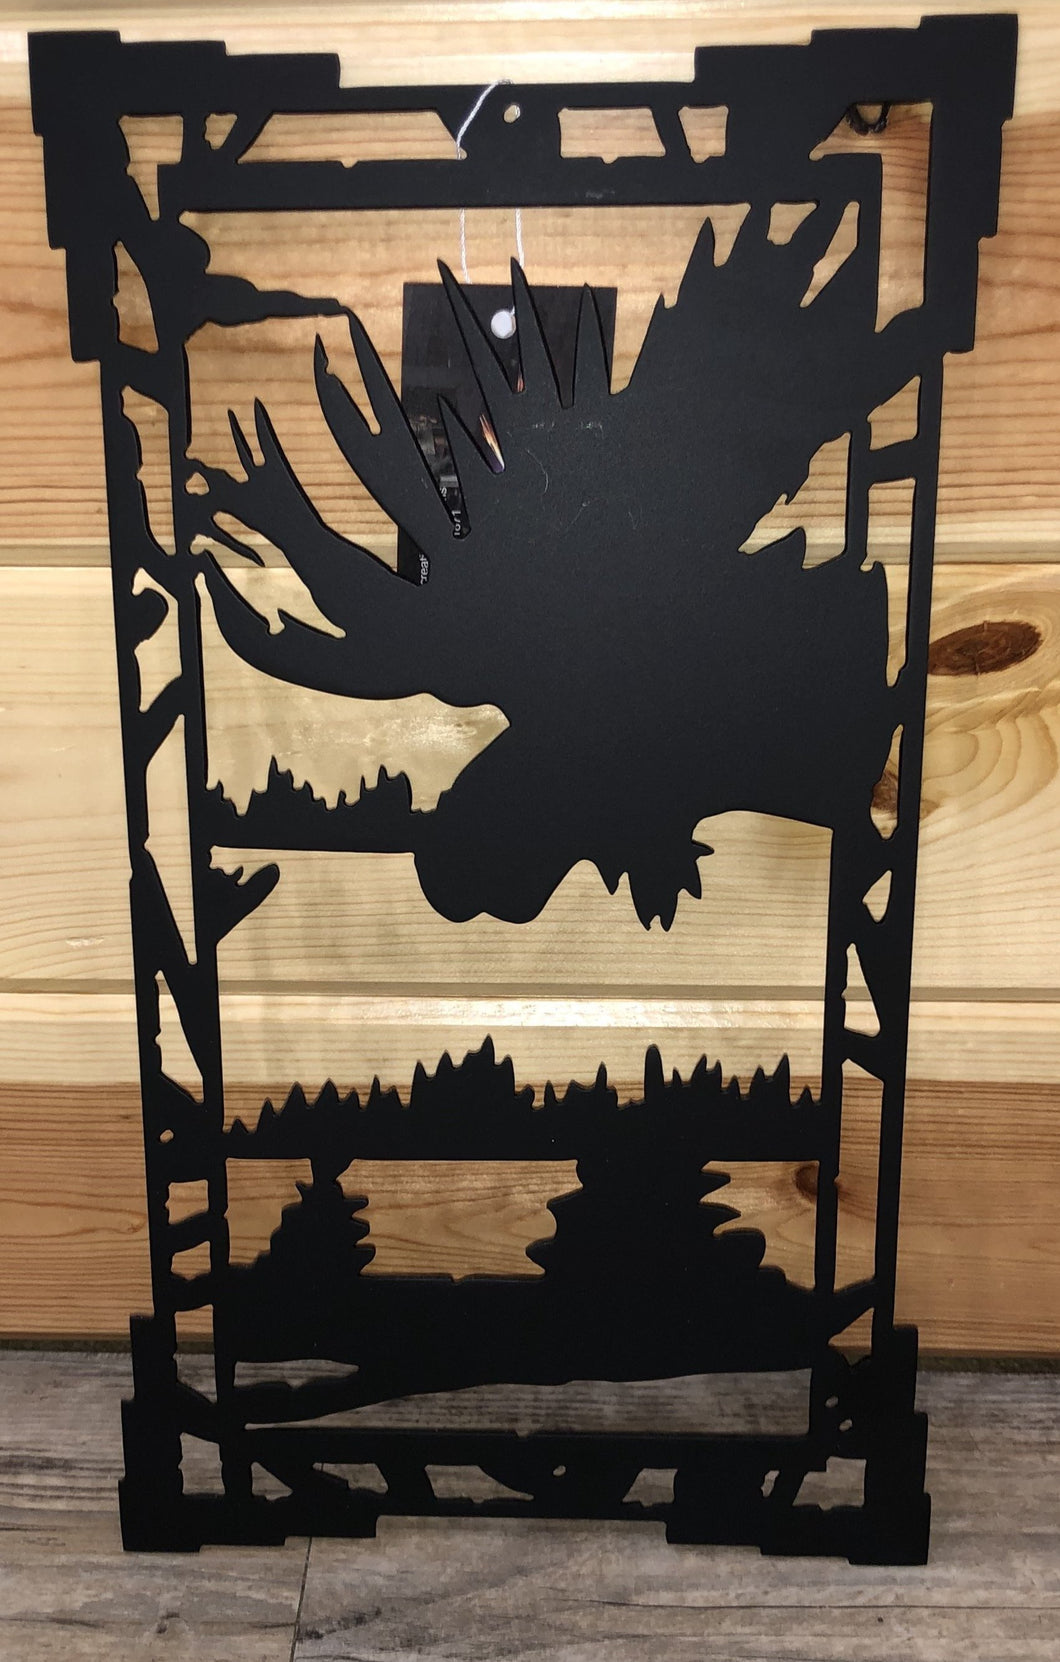 Rectangle Moose Decorative Metal Art Wall Hanging - Cut' Creations